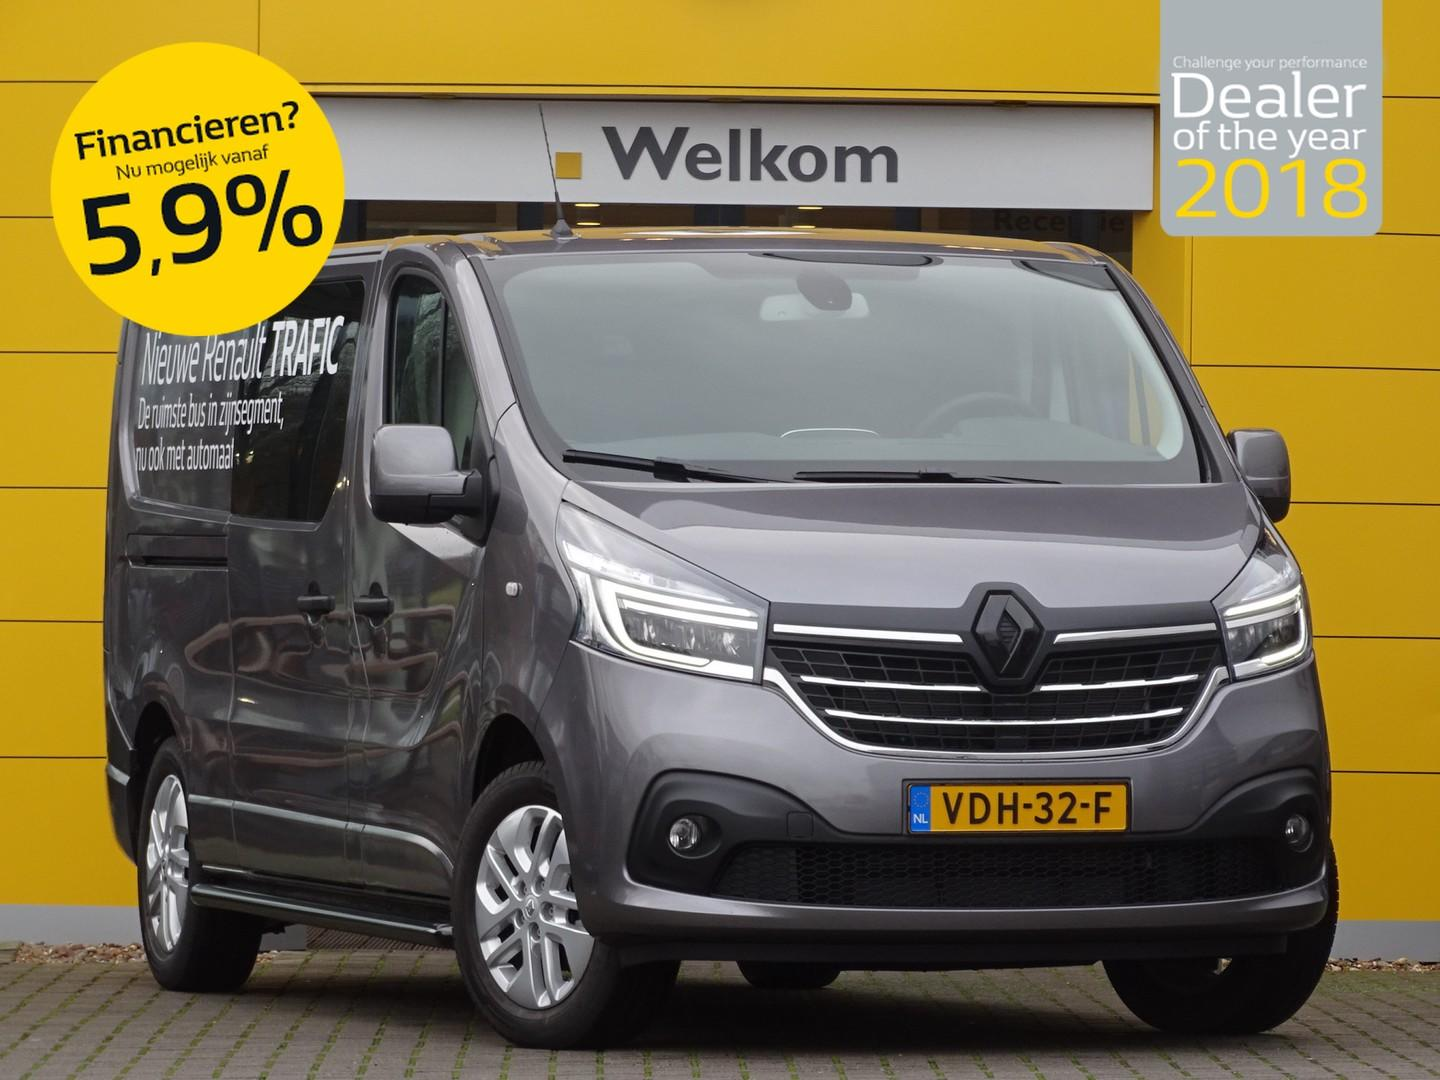 Renault Trafic 2.0 dci edc/automaat 170 t29 l2h1 dc luxe